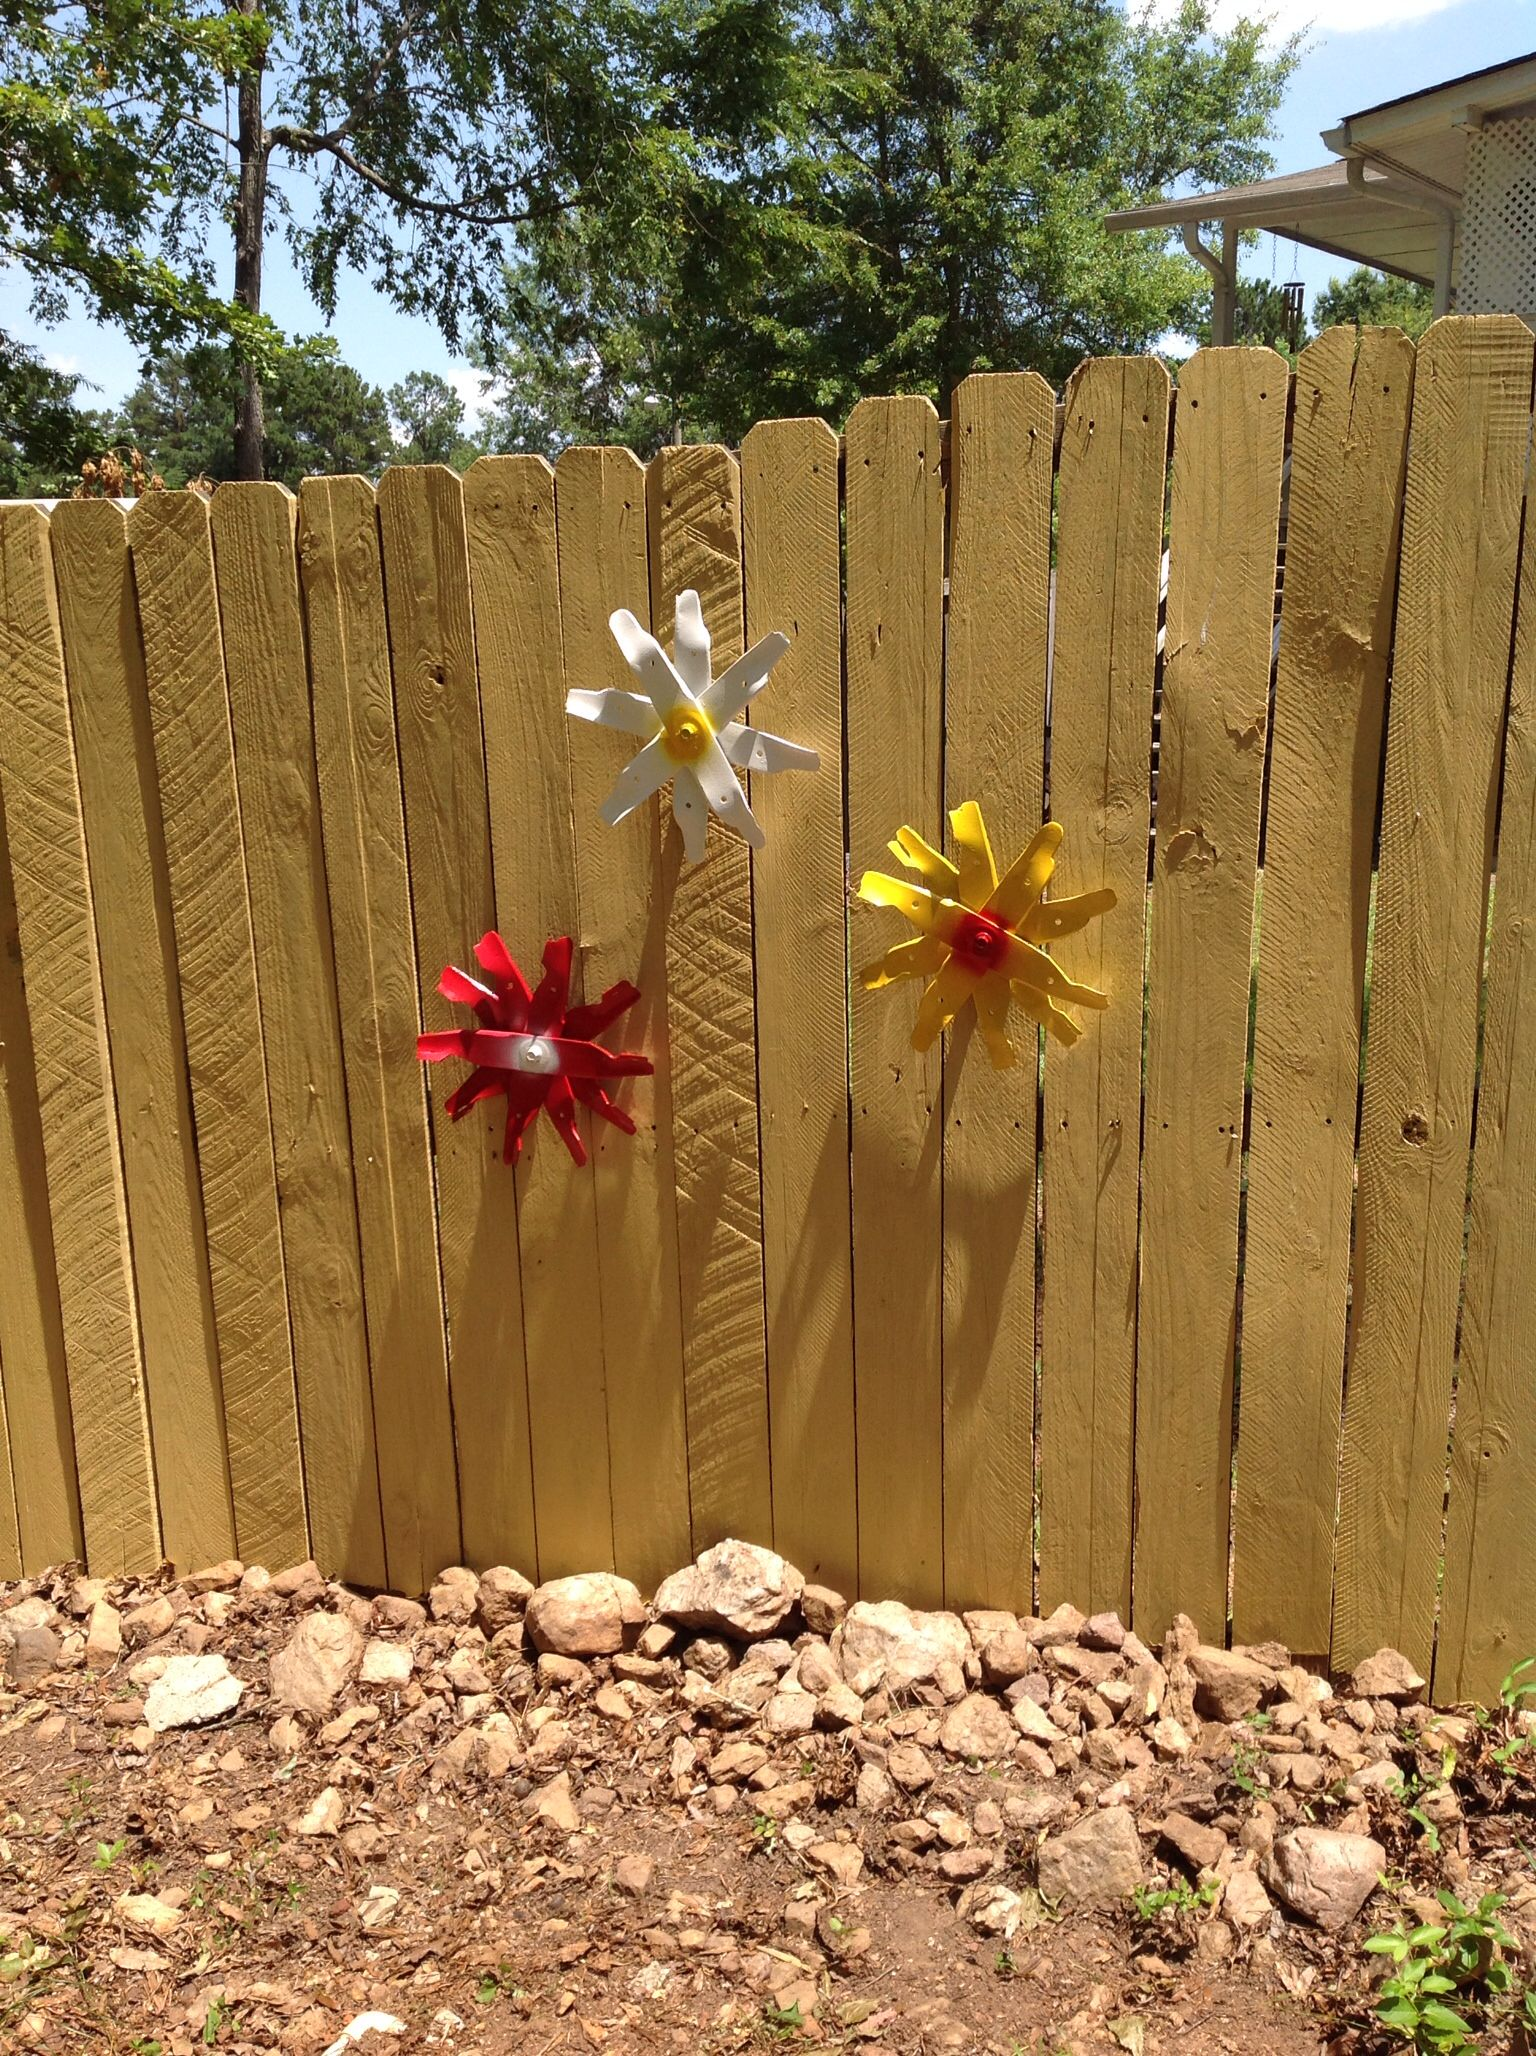 Used lawn mower blades make metal art flowers for garden fence ...